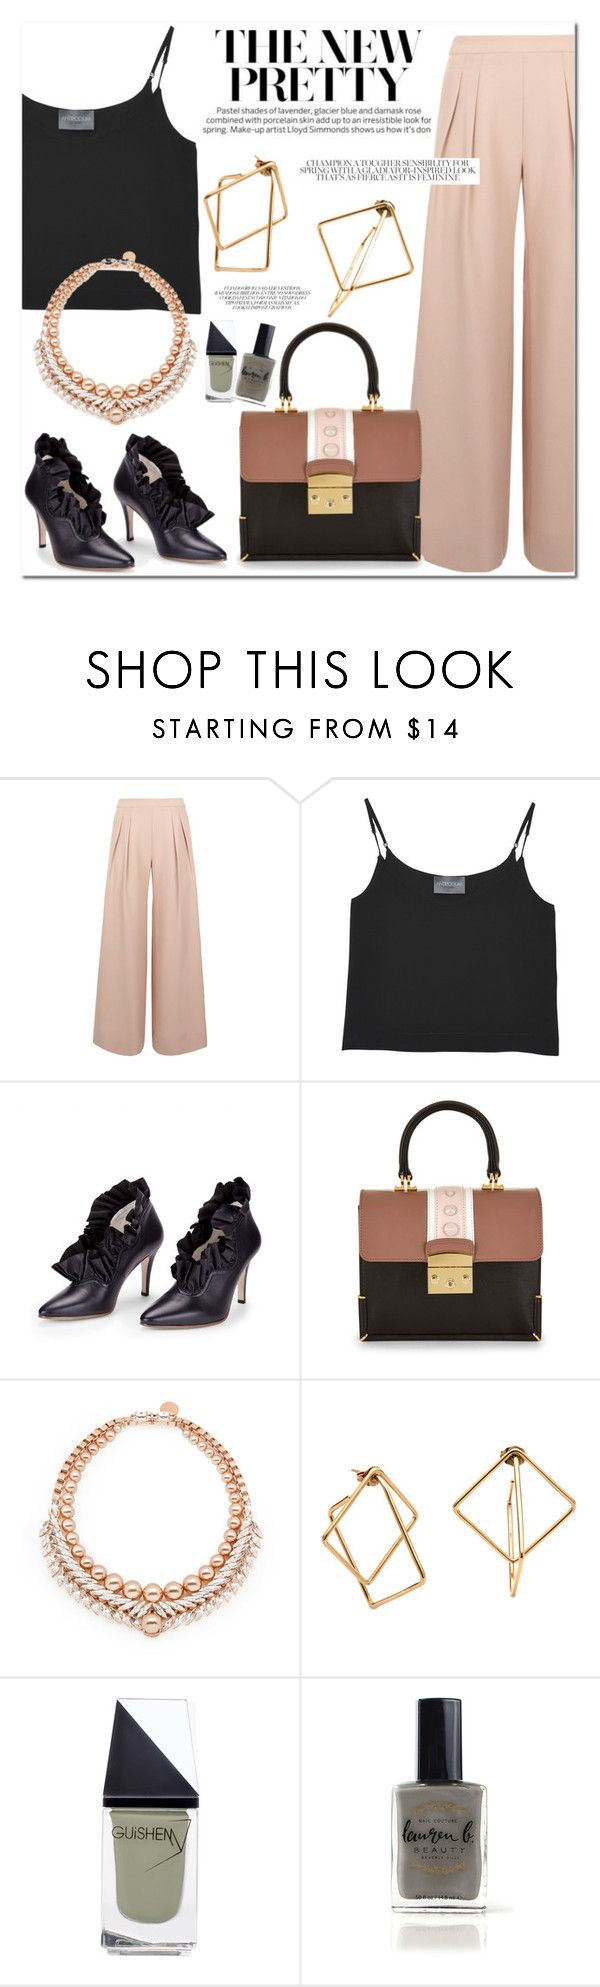 """""""Chic tuesday!"""" by runway2street ❤ liked on Polyvore featuring Antipodium, Zoe Lee, MayraFedane, Ellen Conde, Caterina Zangrando, GUiSHEM and Lauren B. Beauty"""